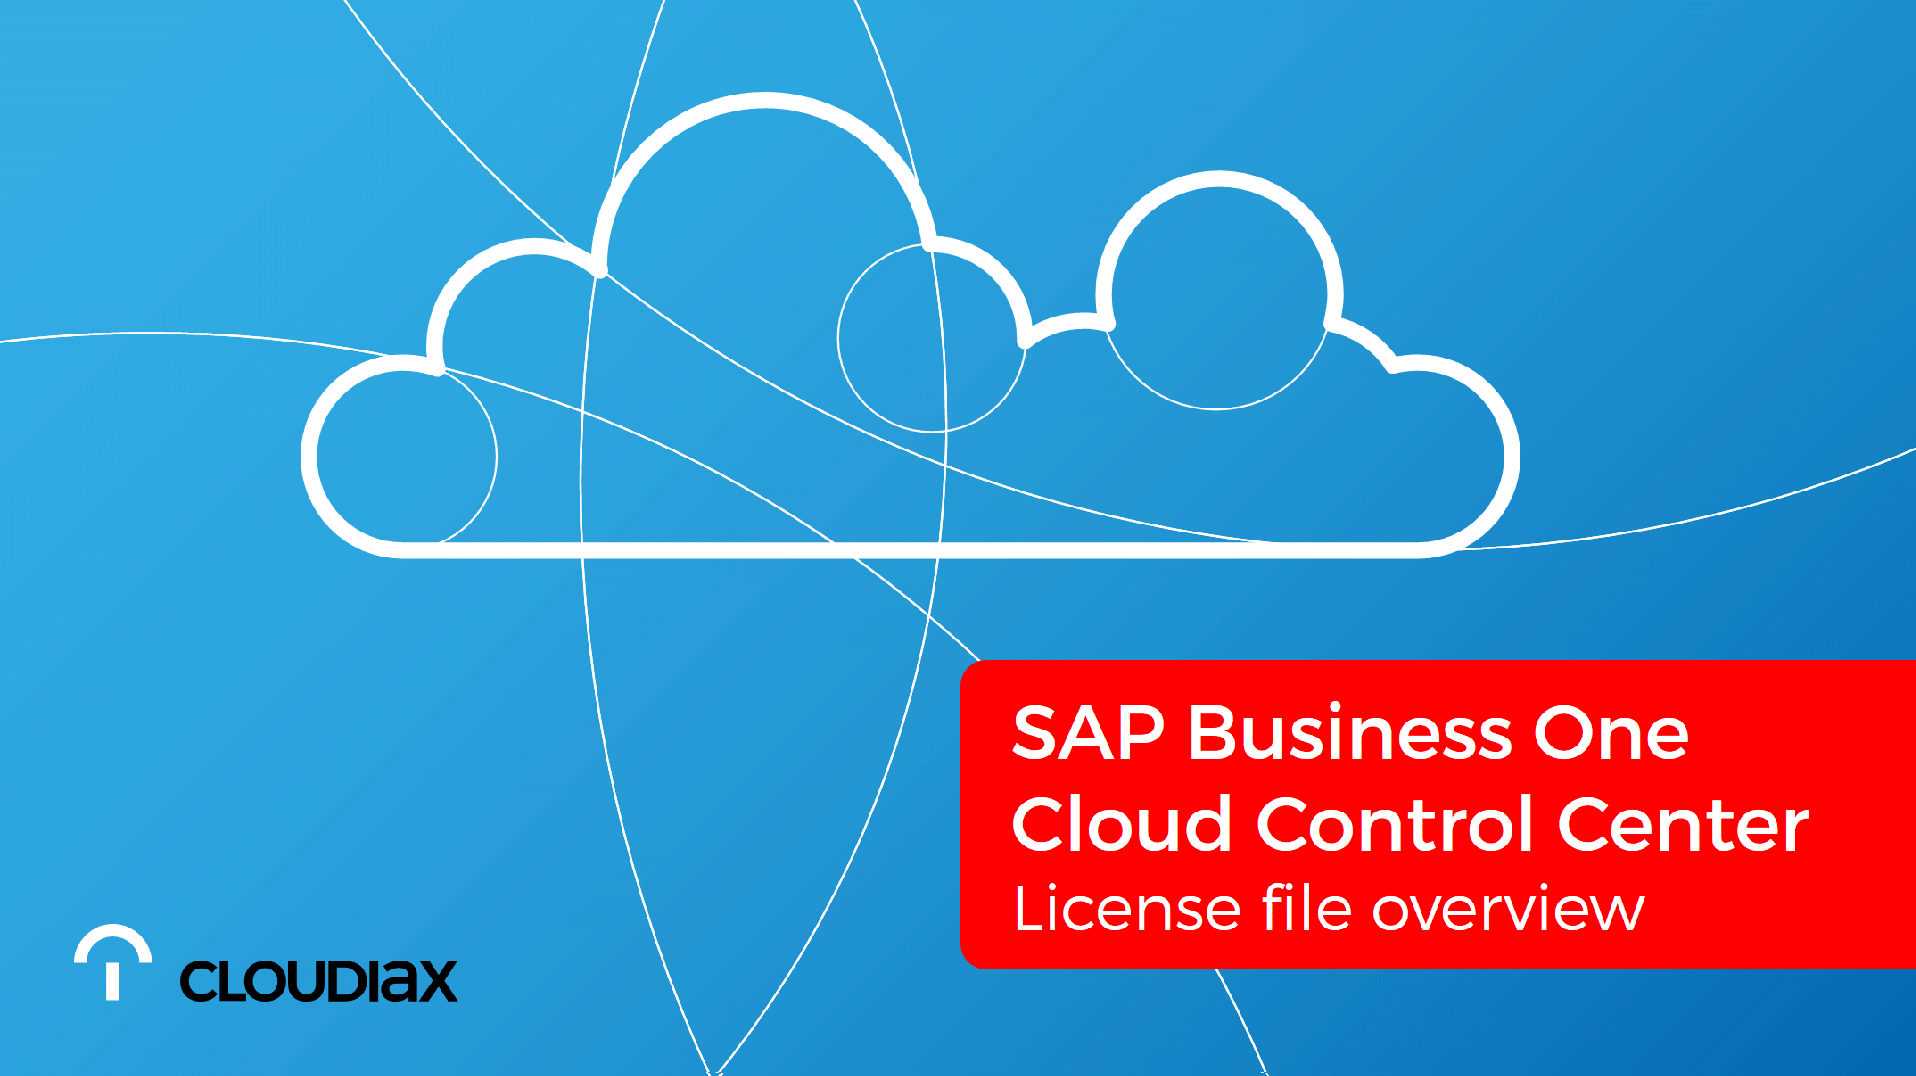 SAP Business One Cloud Control Center - License file overview